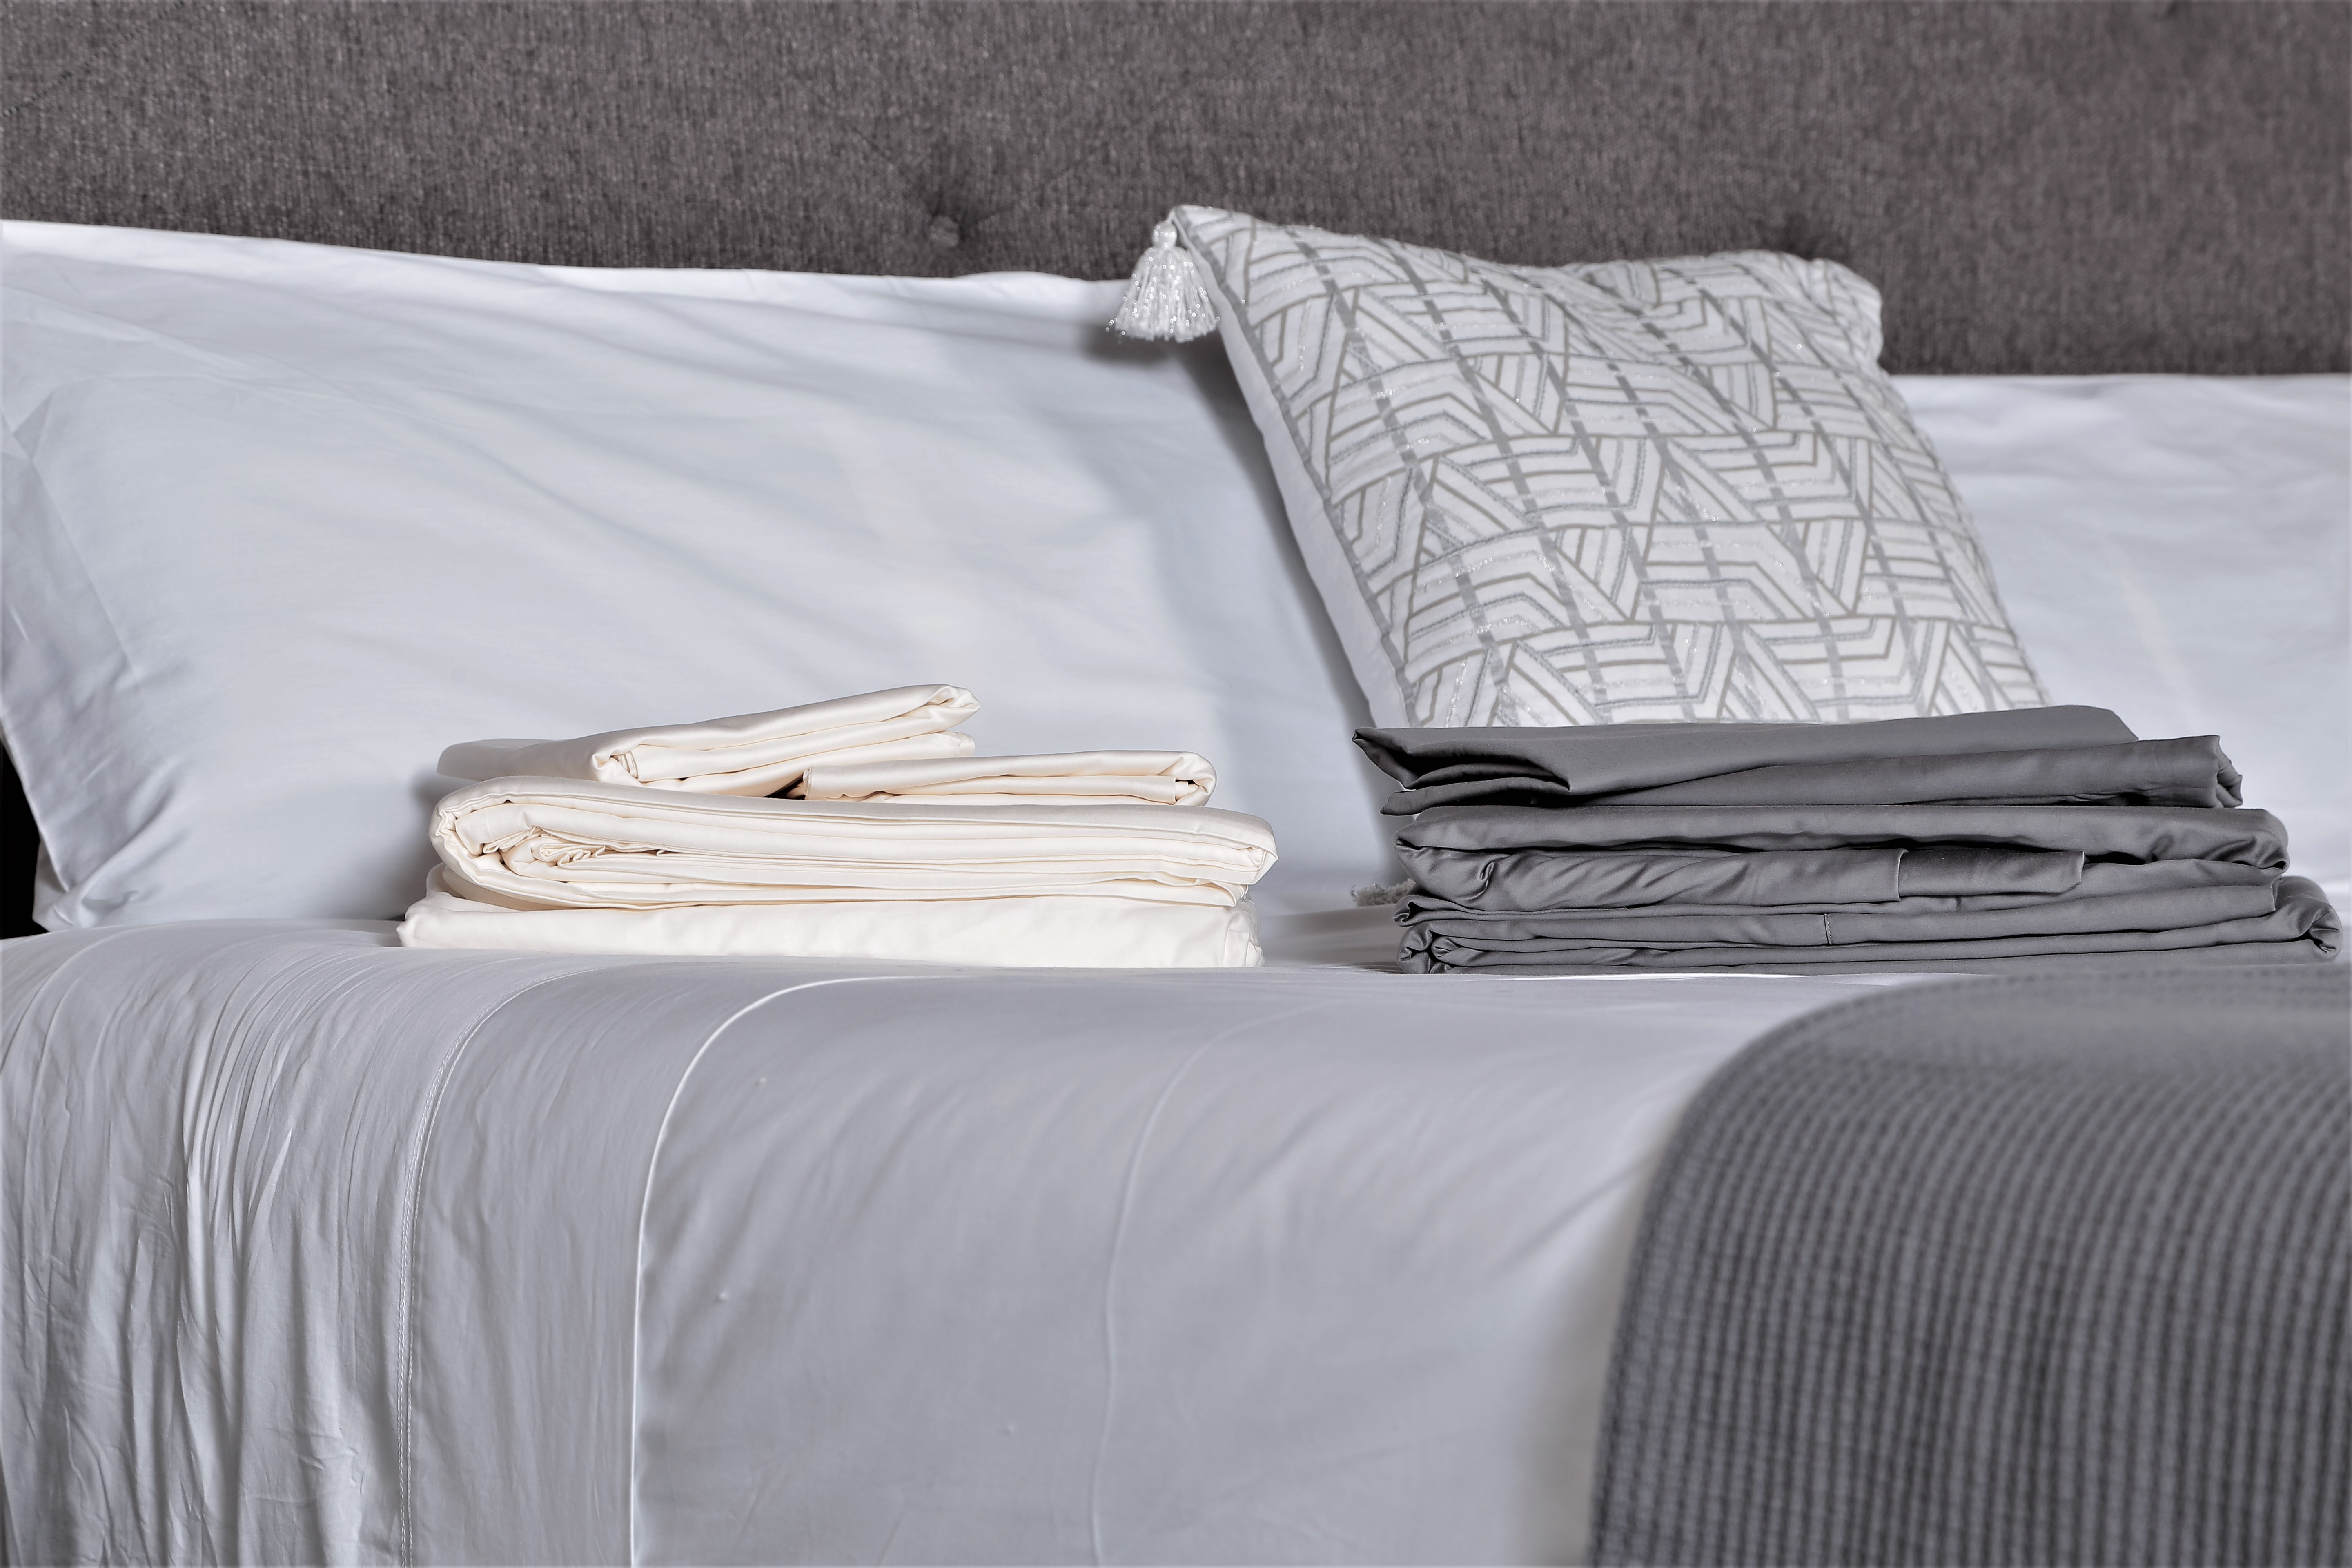 Rollin In The Sheets Grund America Adds Organic Sheets